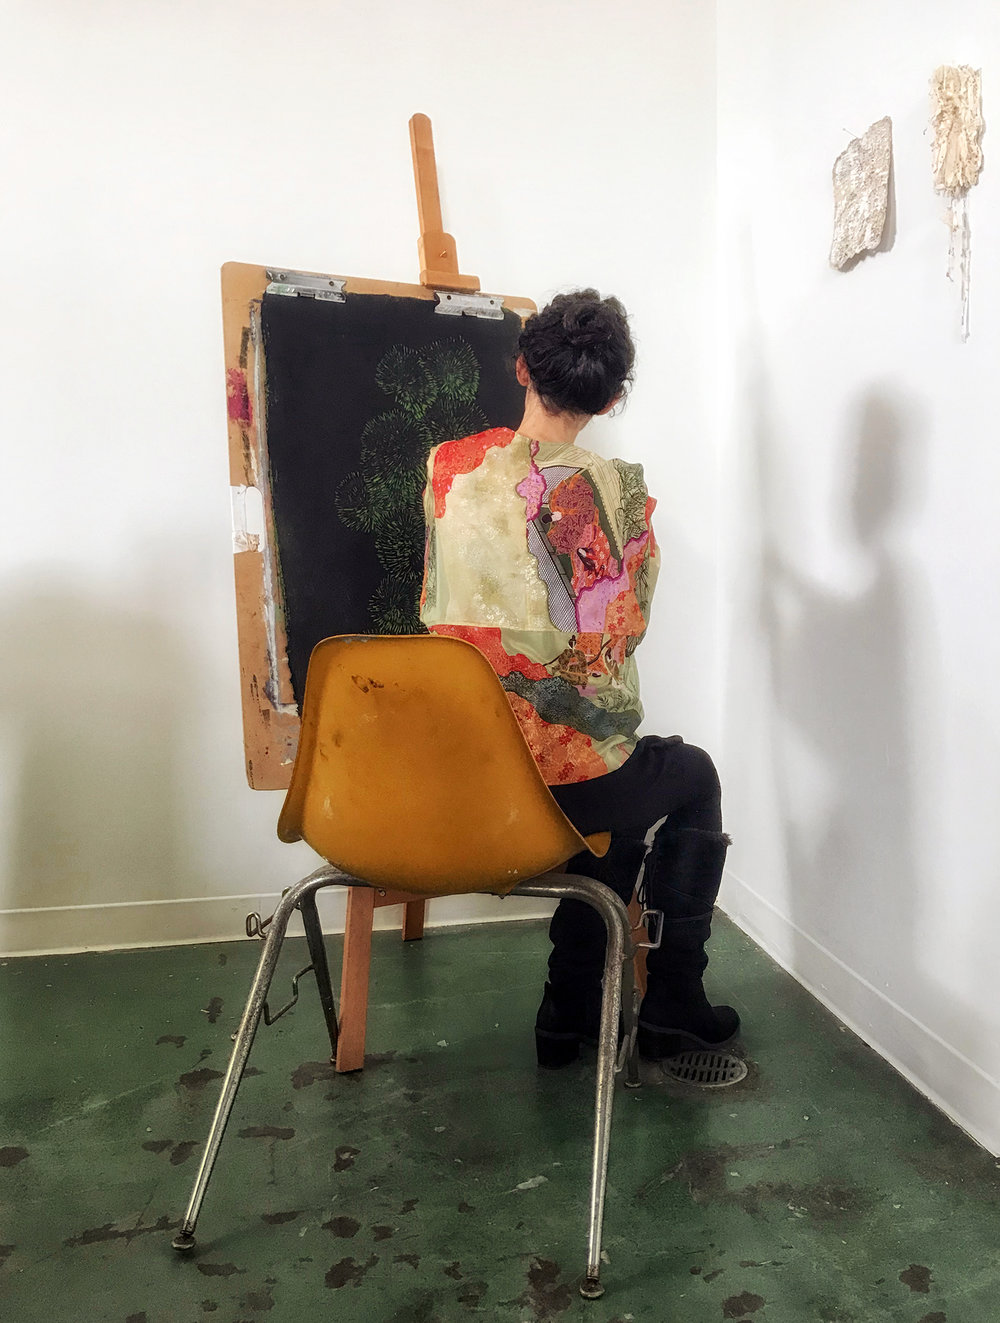 Capturing  Rebecca  in the moment in our shared studio at  Box13 Artspace